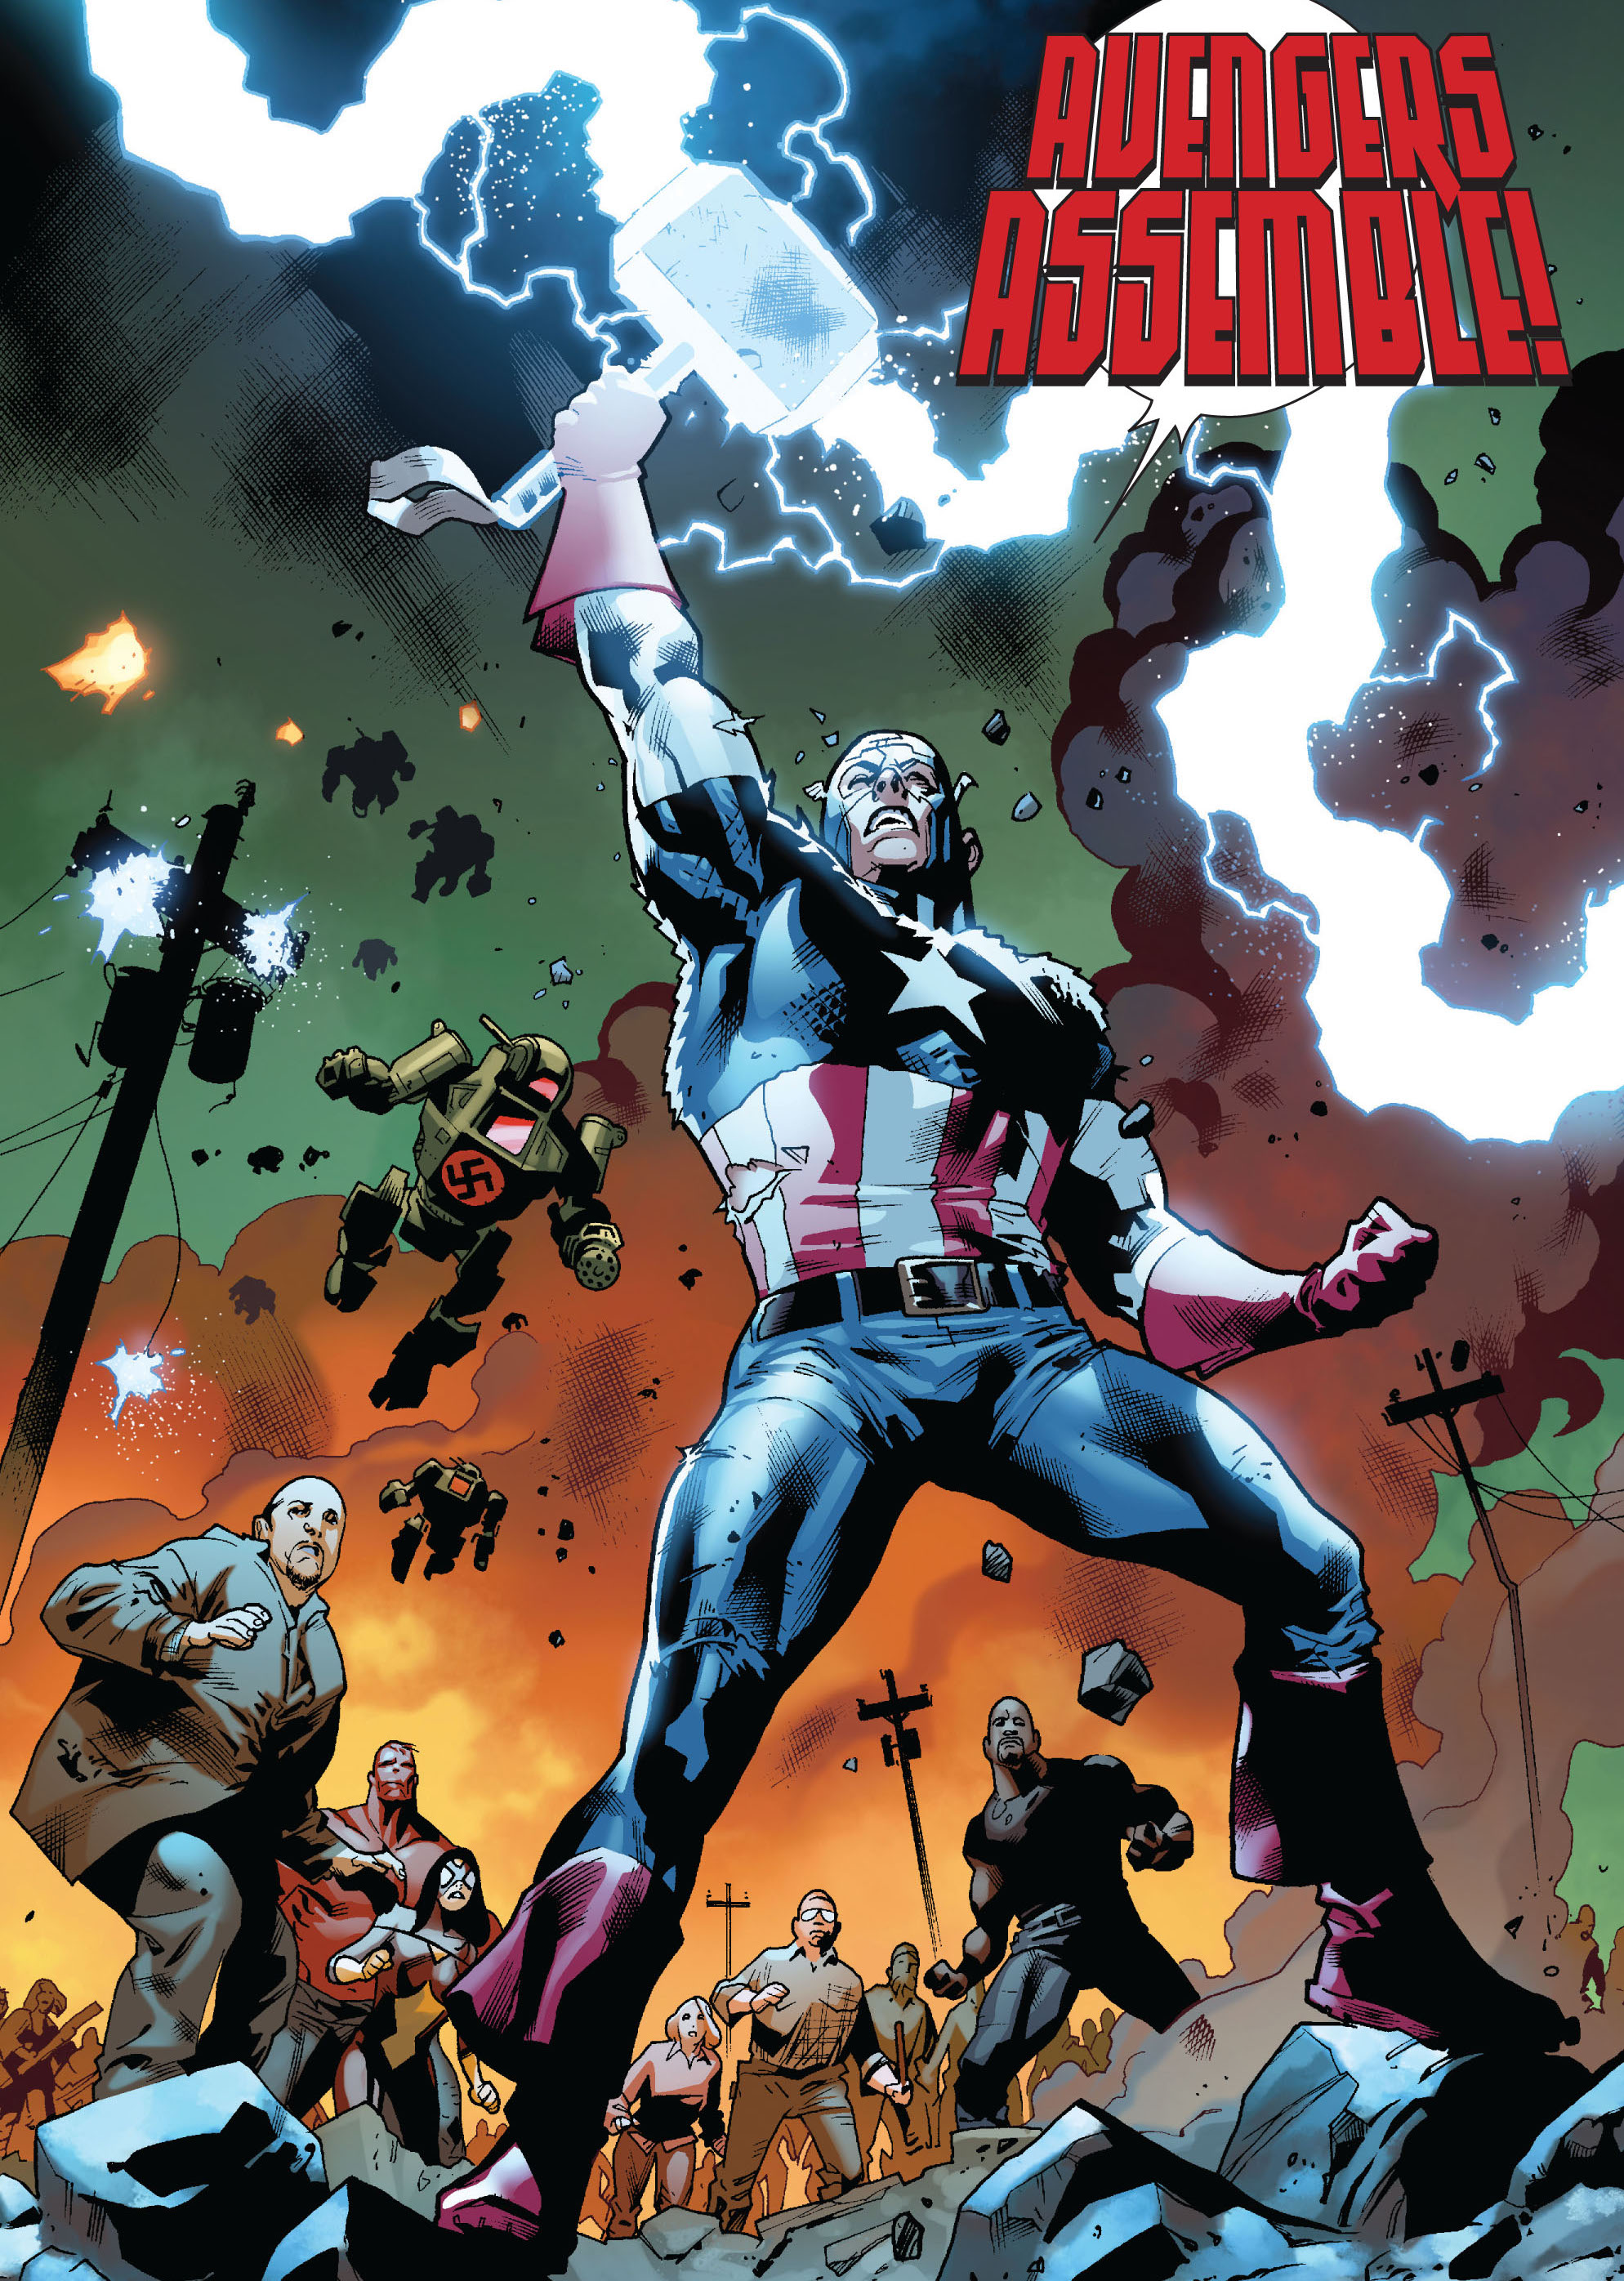 to rally the heroes against an asgardian deity captain america lifts mjolnir in fear itself 7 w 30 Things You Didn't Know About Avengers: Age of Ultron